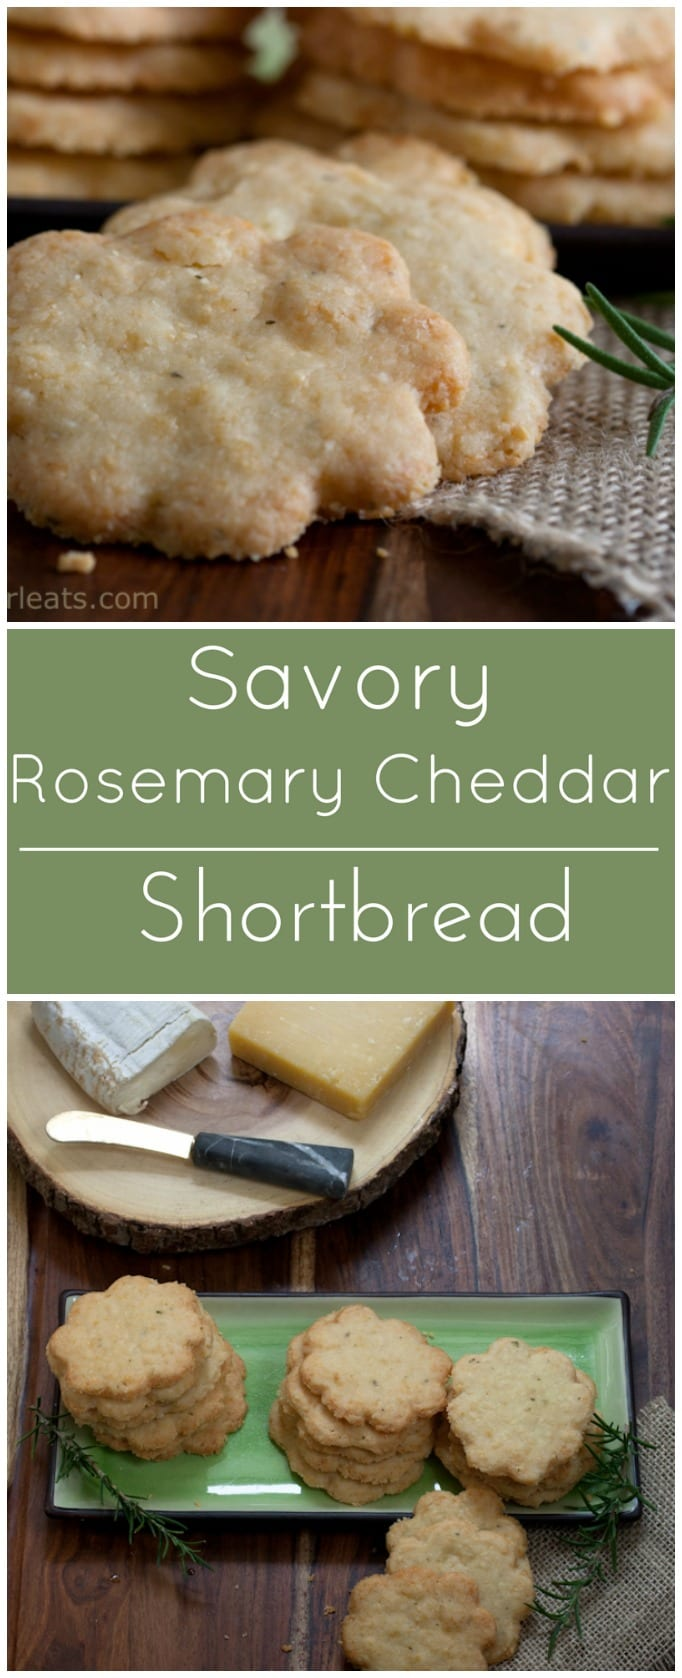 These Savory Rosemary Cheddar Shortbread are the perfect addition to any hors d'oeuvres tray or cheese platter.